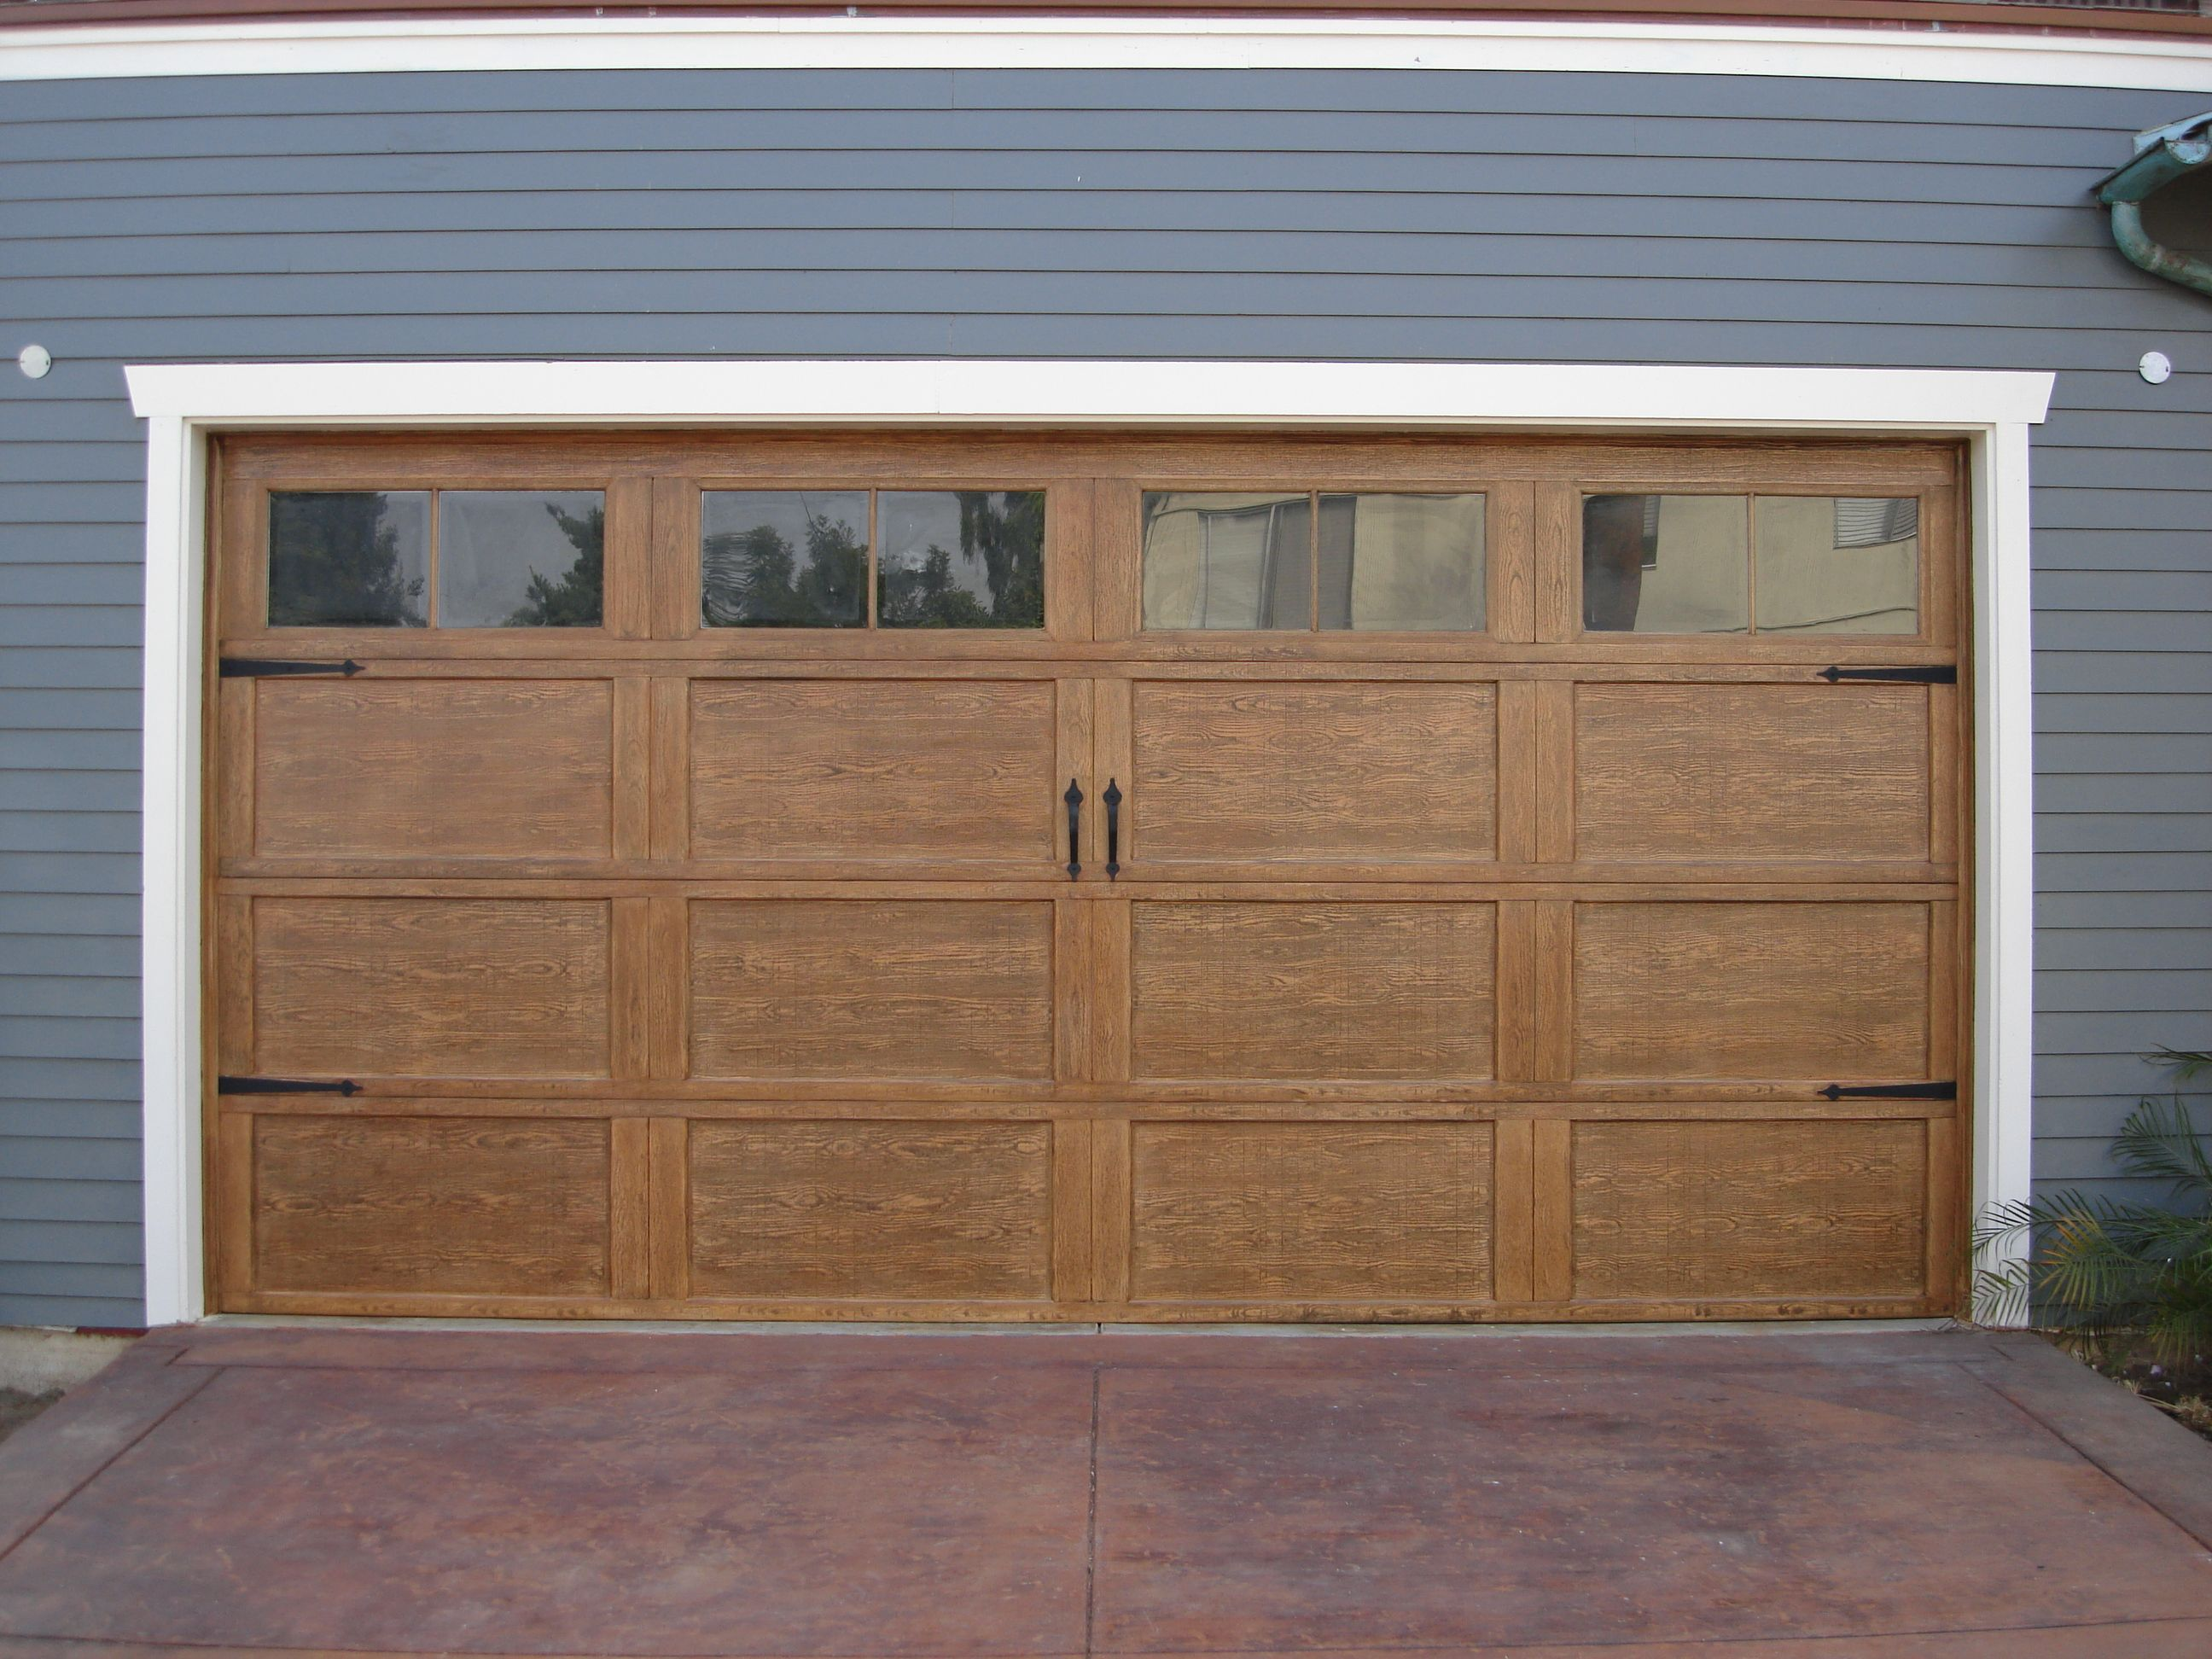 Choice For Garage Door Styles With Sliding Garage Doors Also Wood Garage Doors Craftsman Style Garage Doors Garage Doors Brown Garage Door